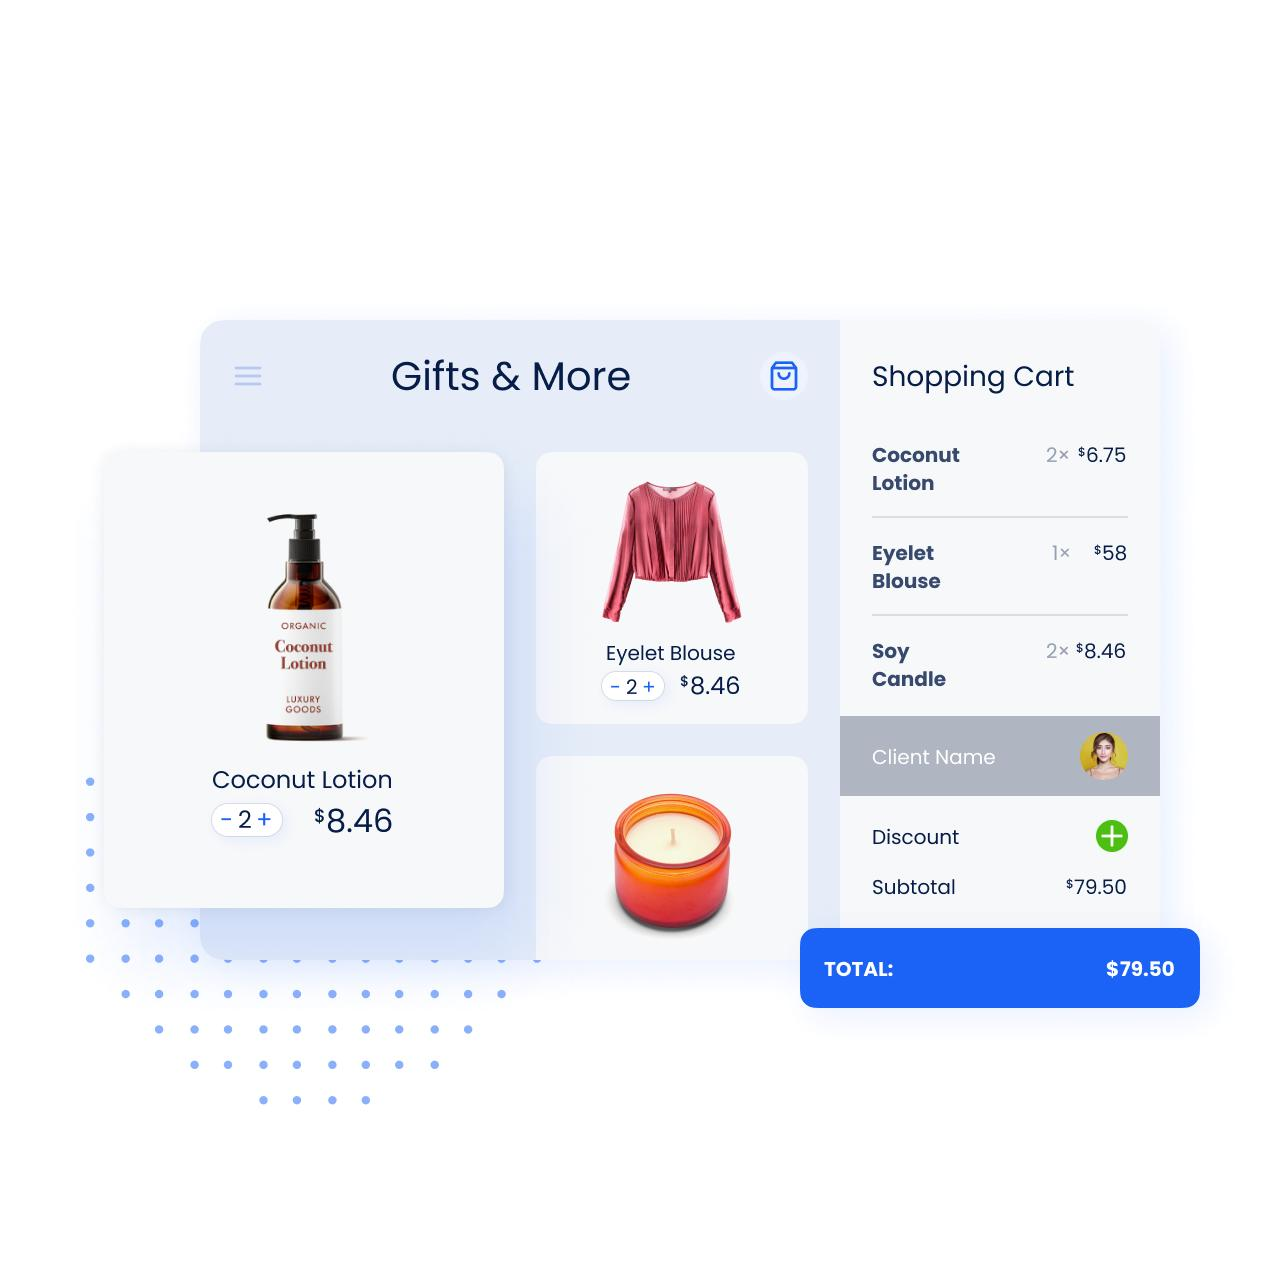 Store items image